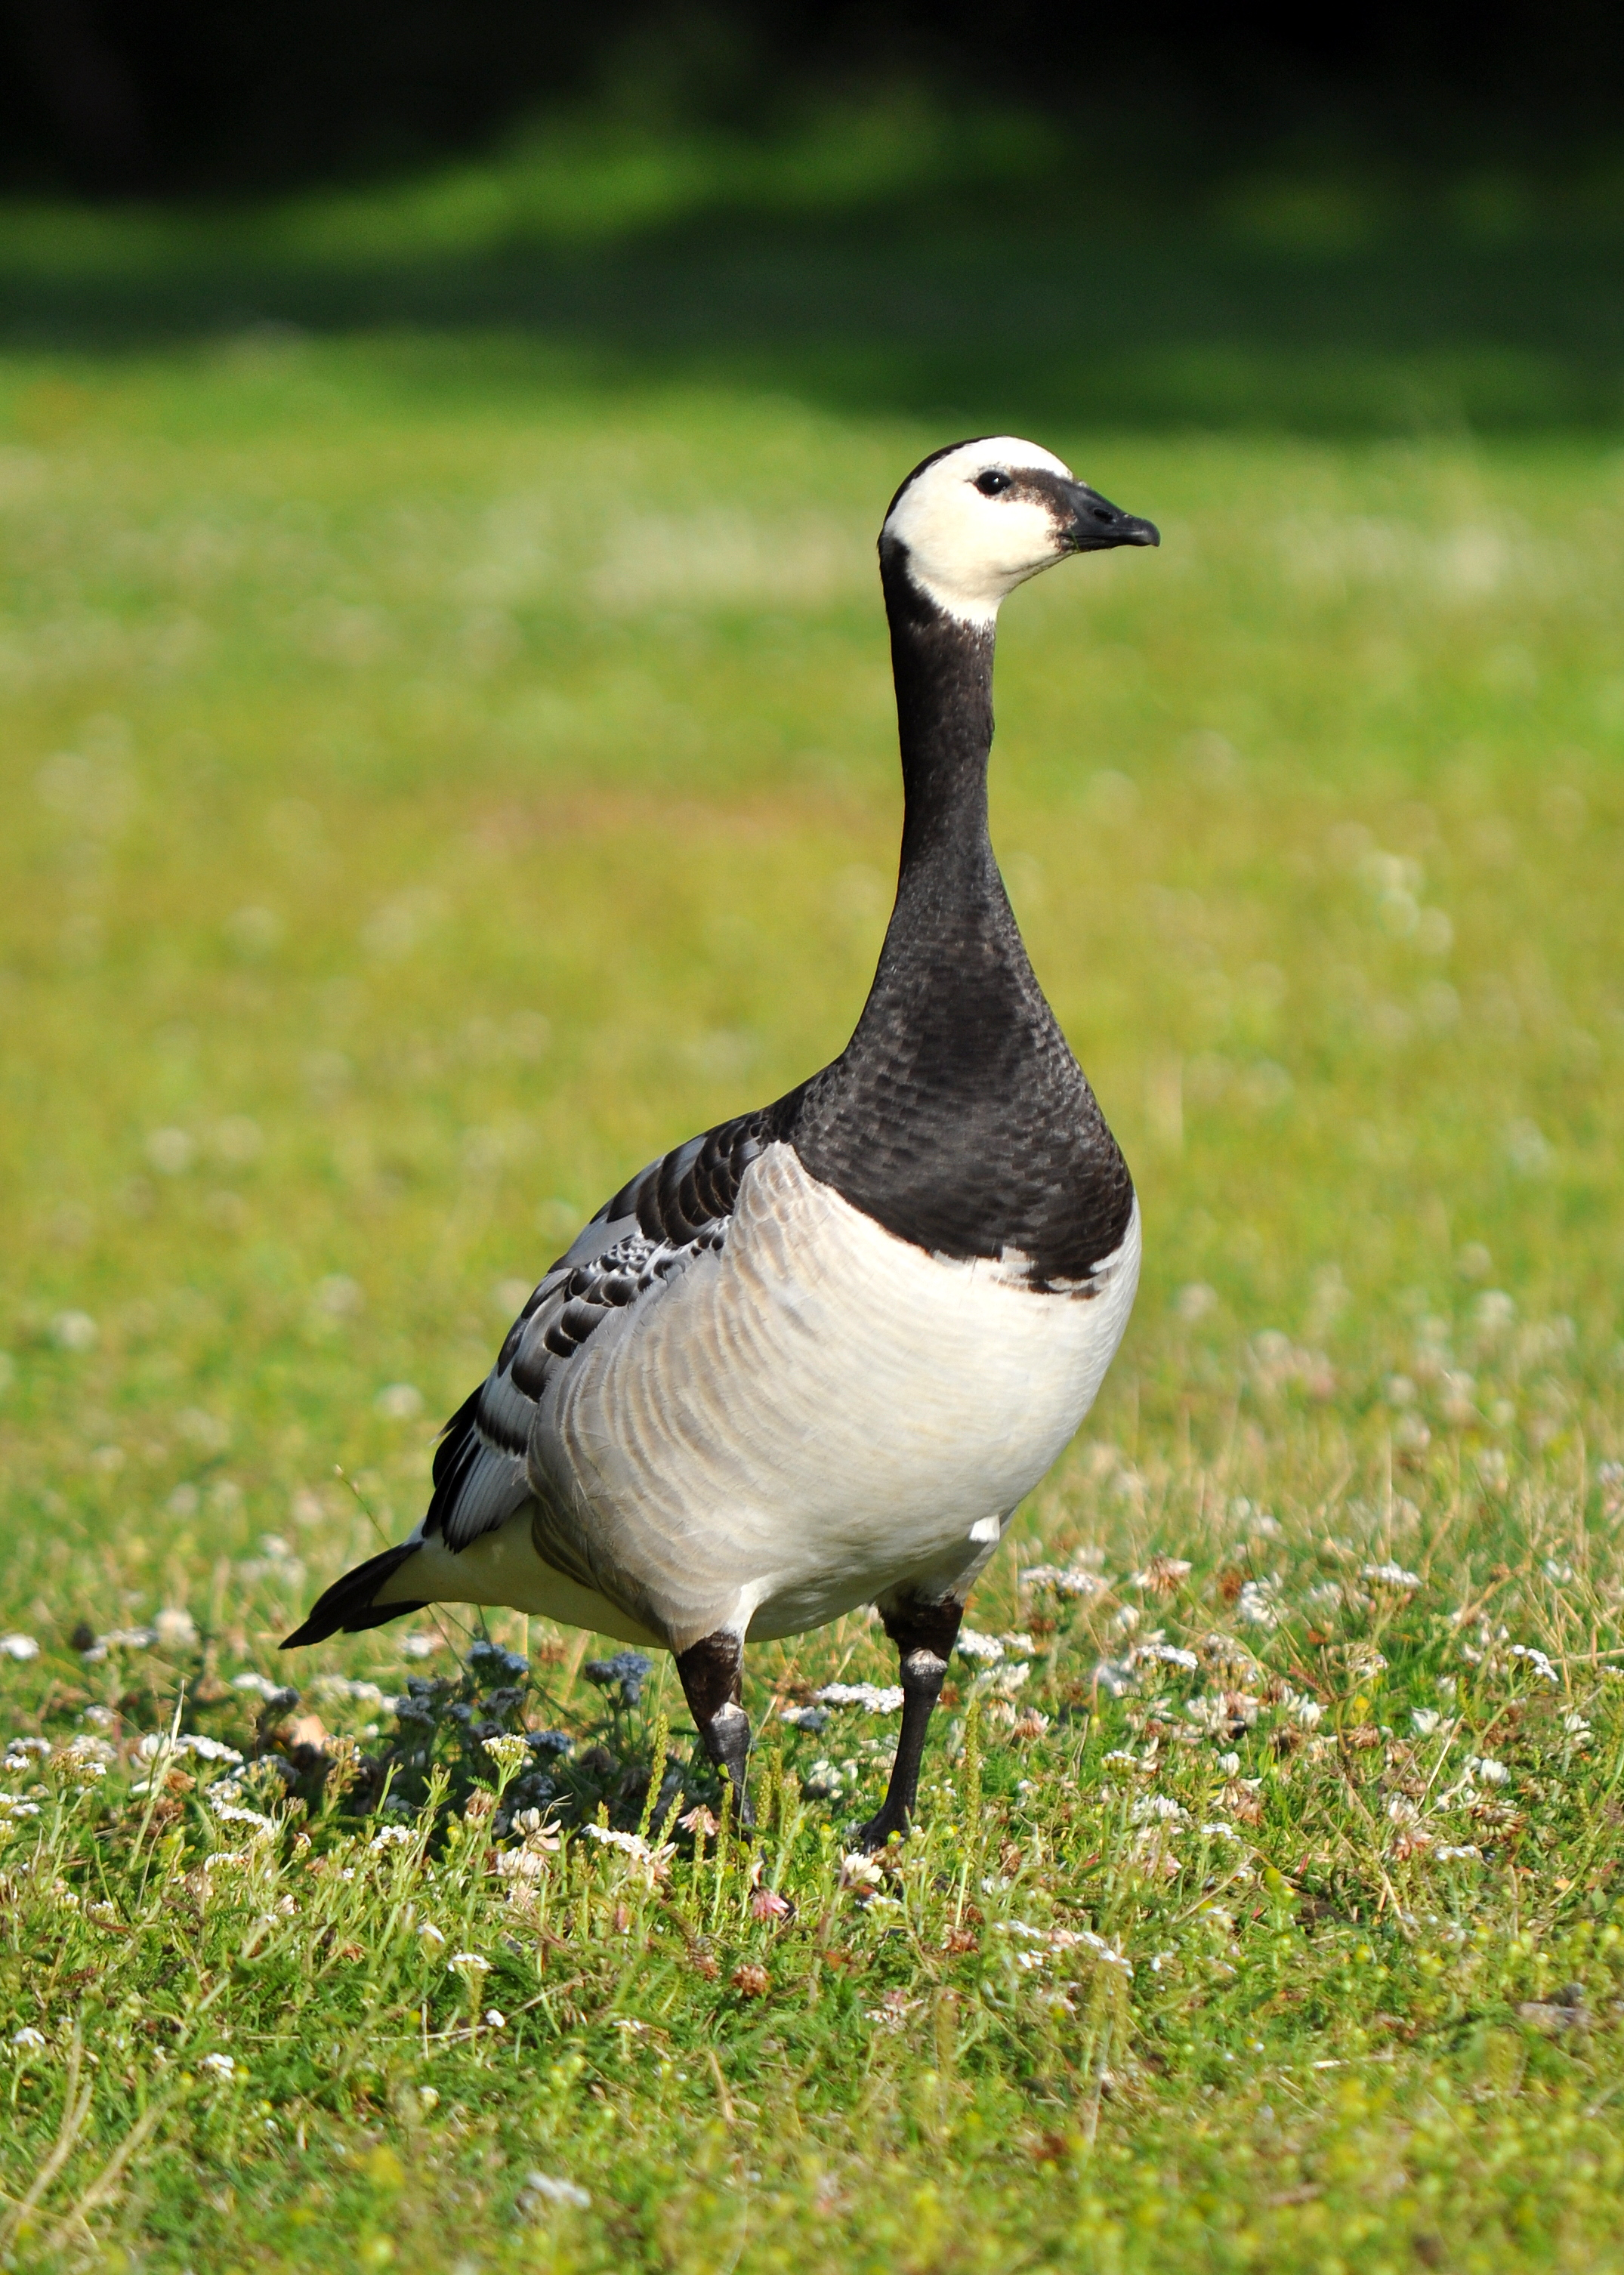 Hunting Barnacle Goose in iceland